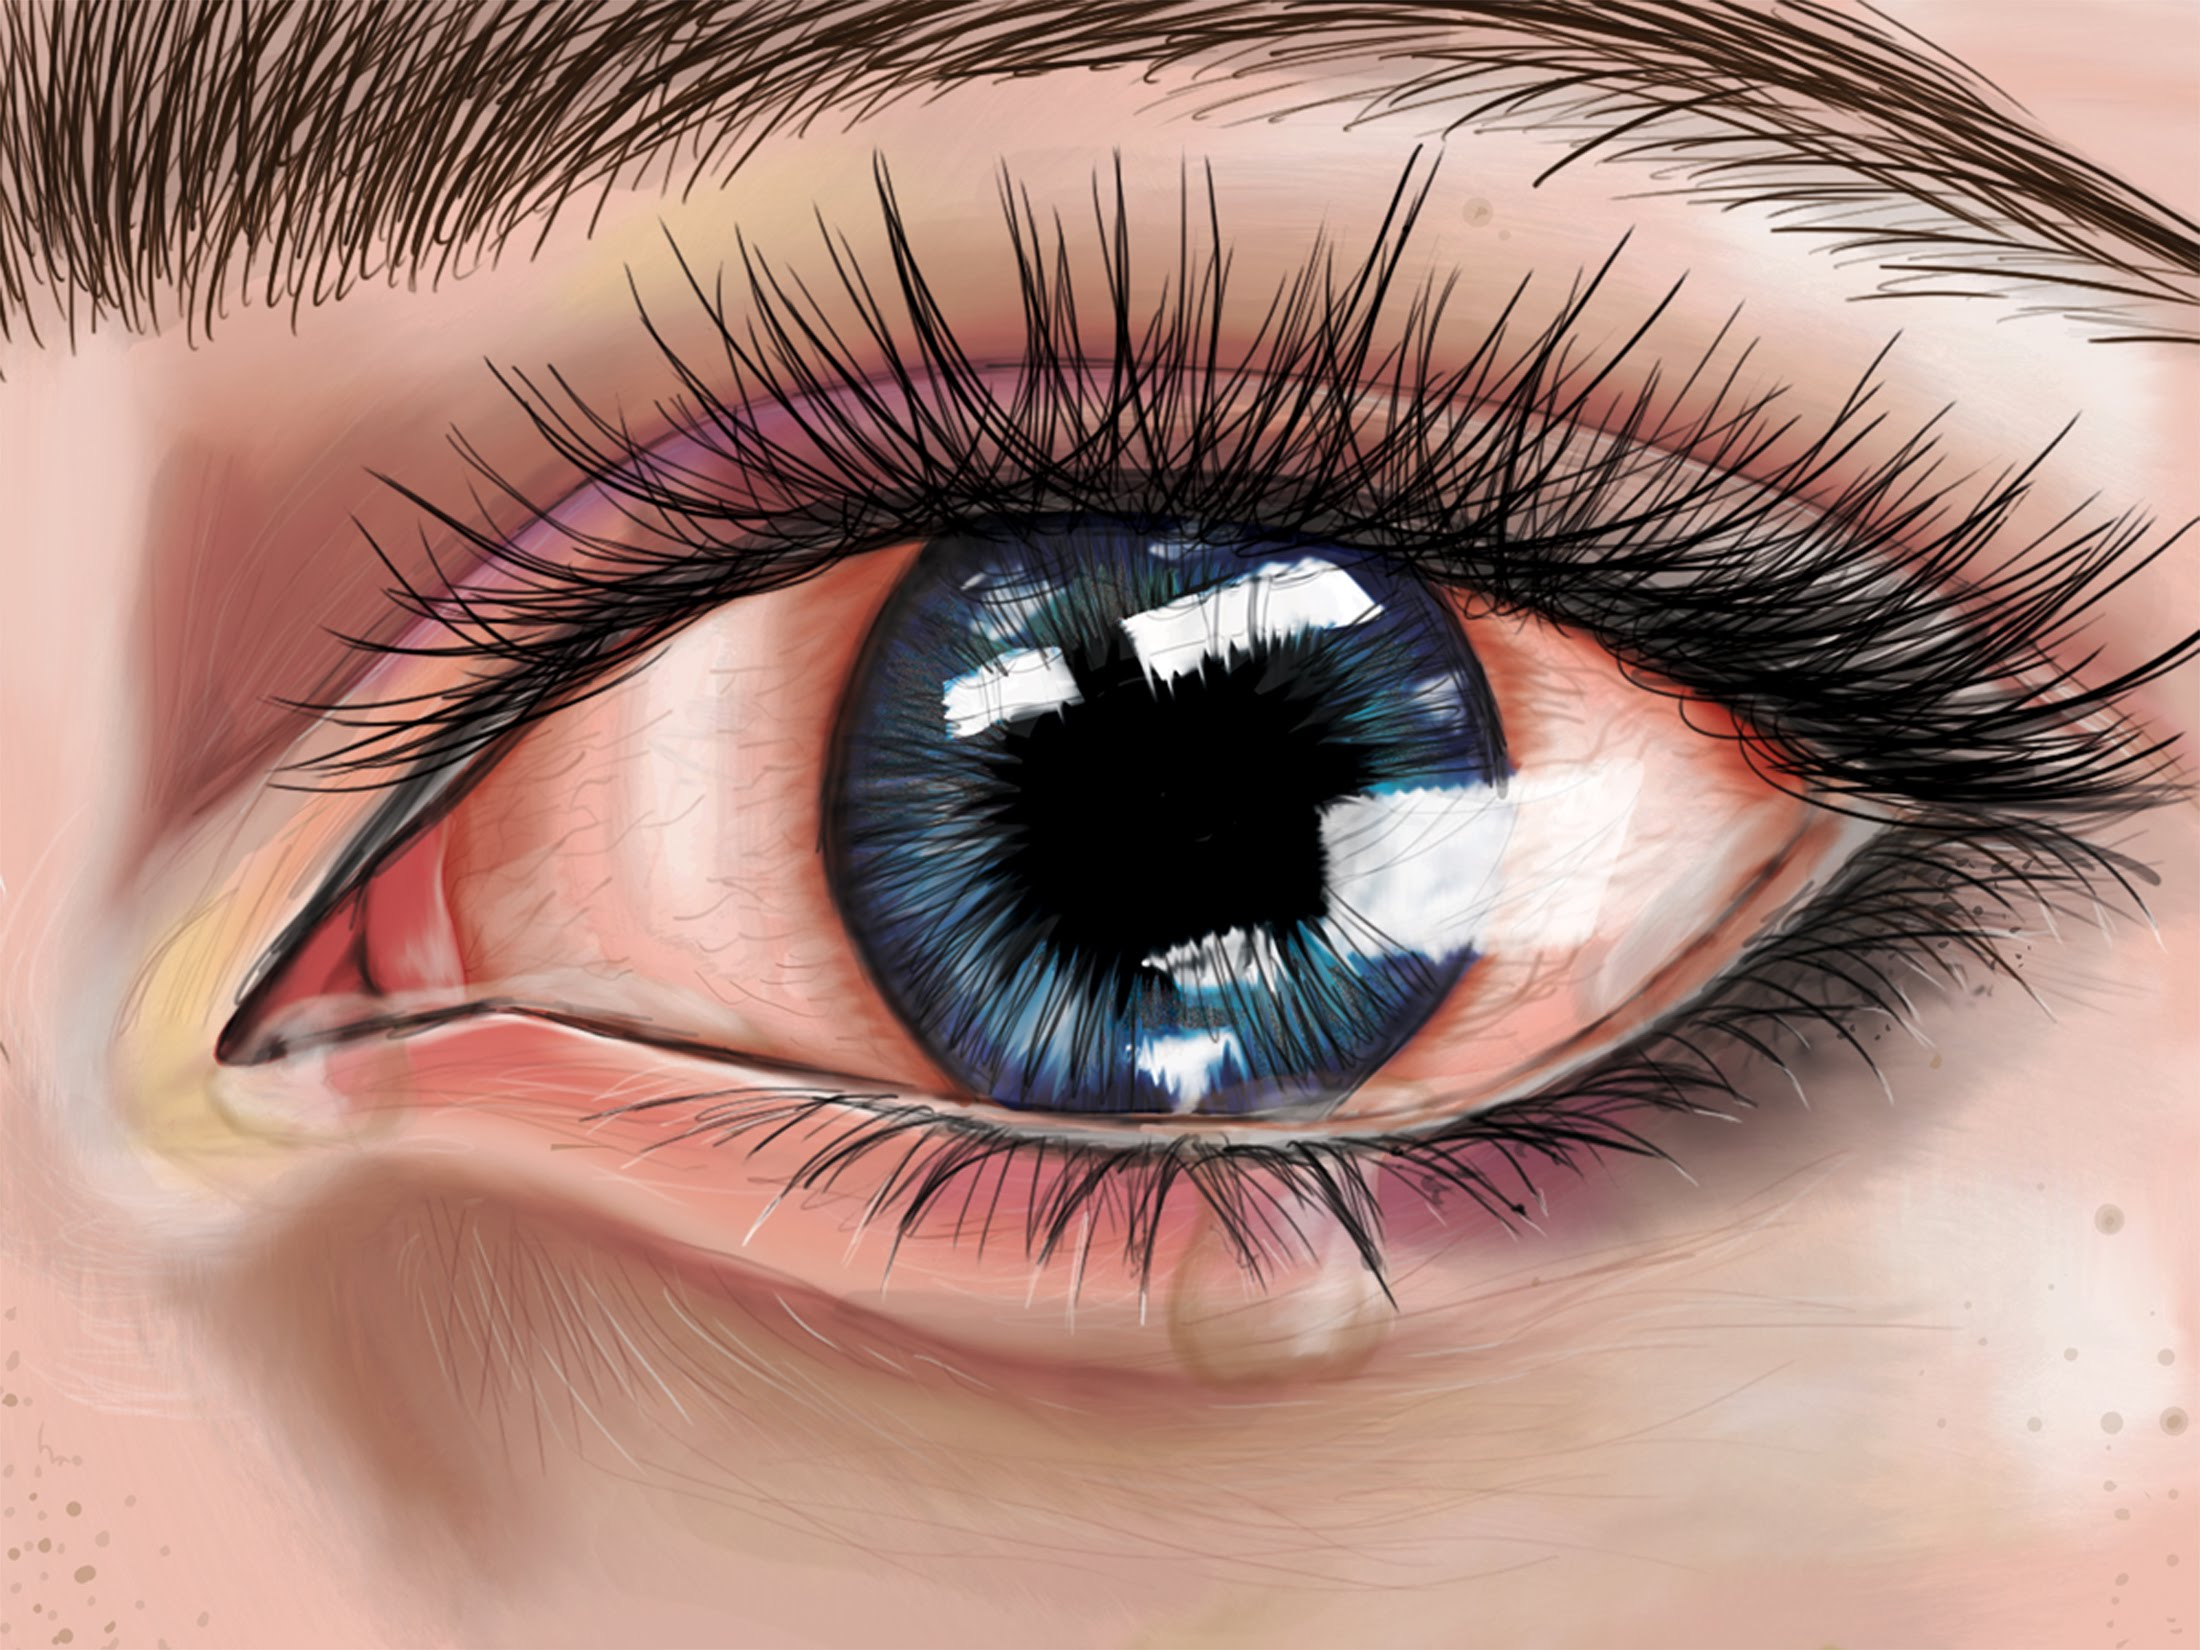 Easy Eye Drawing At Getdrawings Com Free For Personal Use Easy Eye